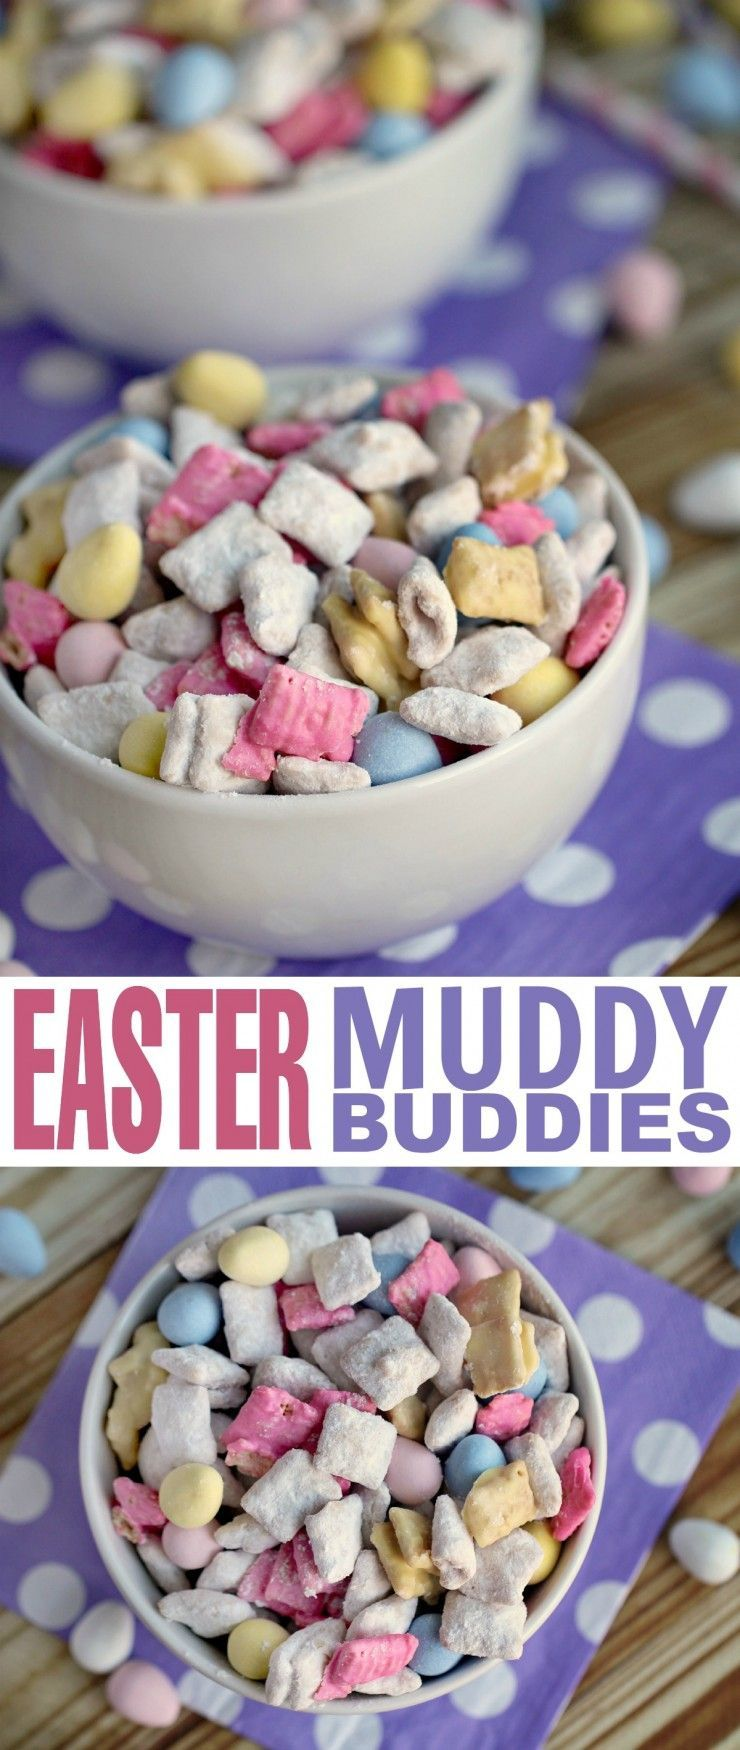 Muddy Buddies These Easter Muddy Buddies are perfect for an Easter snack or Easter dessert - this recipe will quickly become one of your favourite puppy chow recipes!These Easter Muddy Buddies are perfect for an Easter snack or Easter dessert - this recipe will quickly become one of your favourite puppy chow recipes!